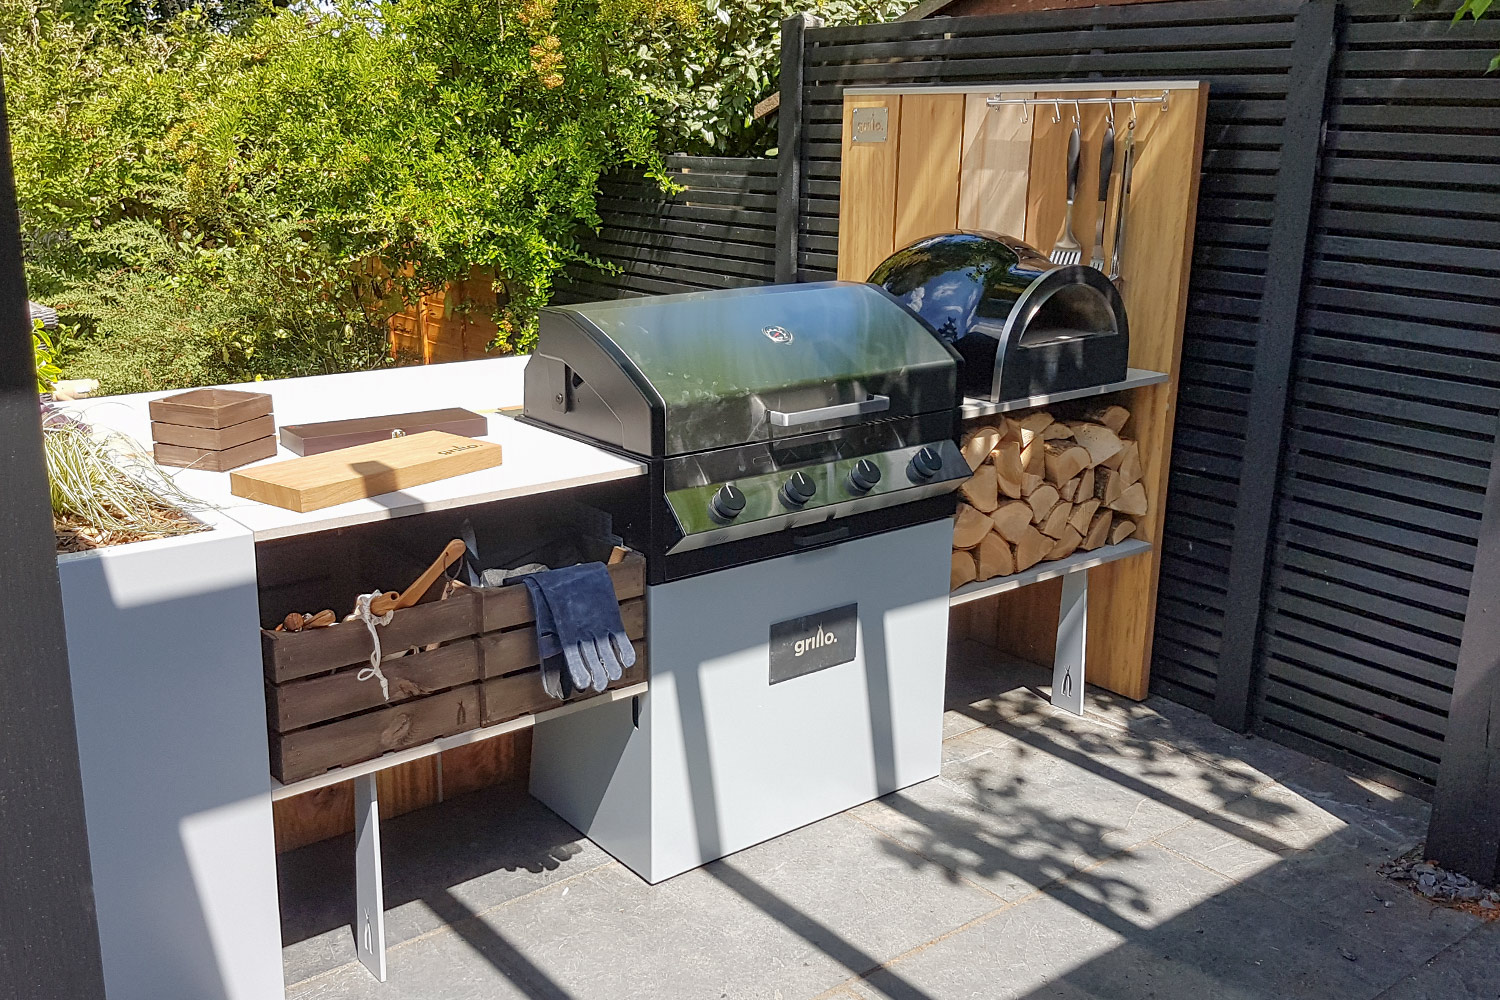 front view of Grillo island gas BBQ pizza oven